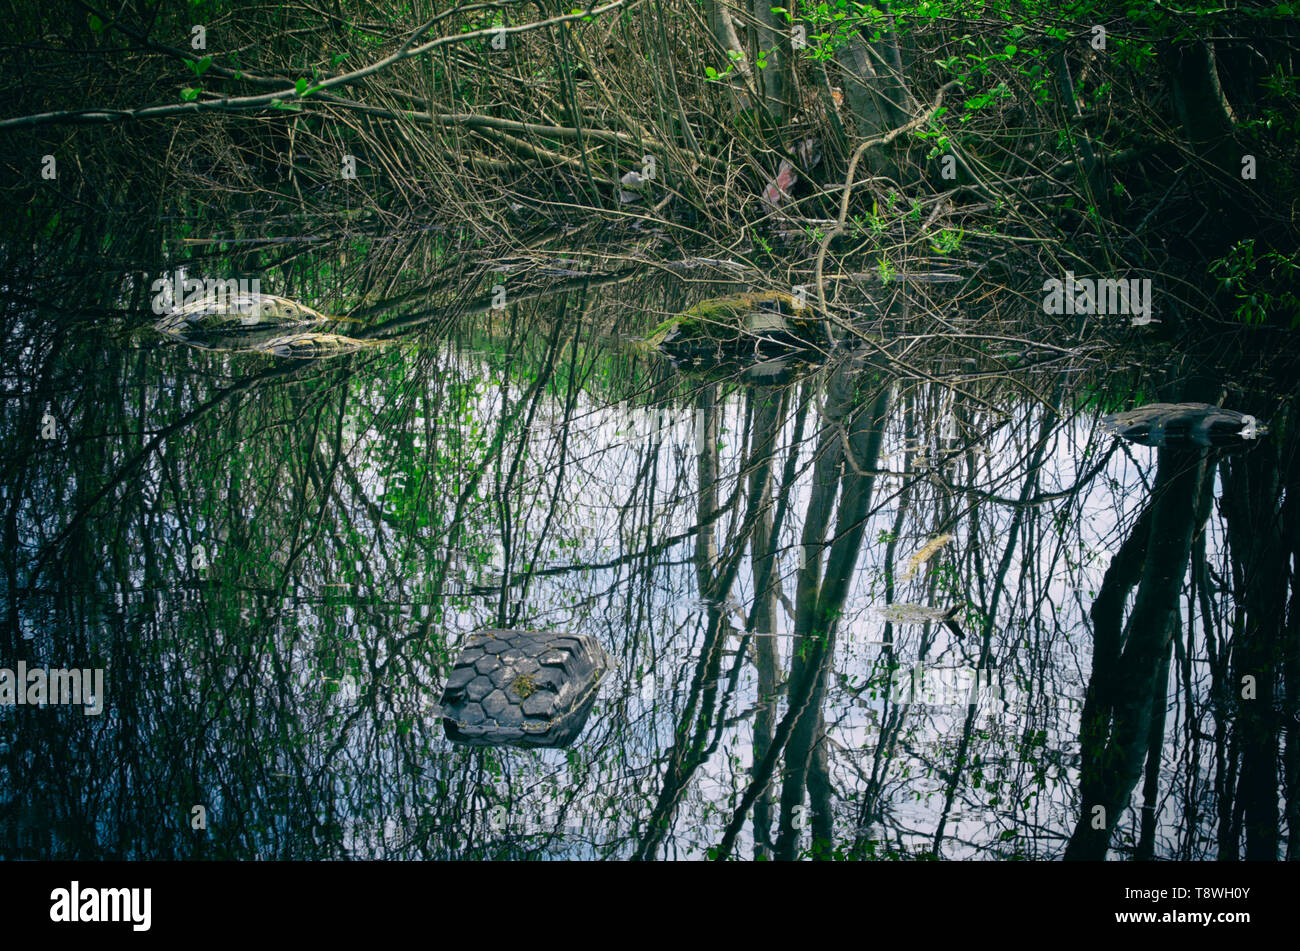 Used tires covered with moss and illegally flooded in a forest pond and trees reflected in the water - Stock Image